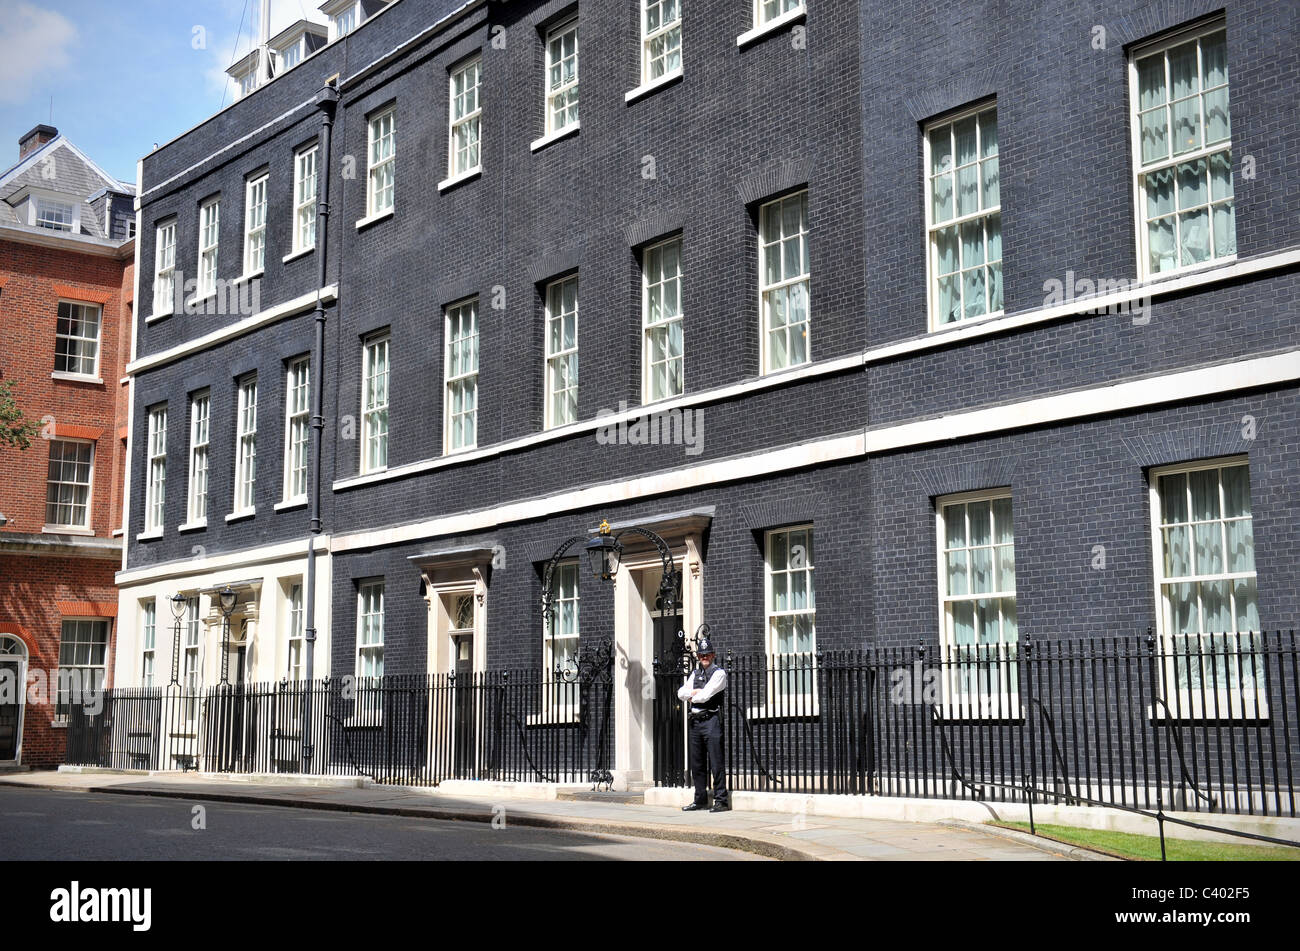 10 downing street in london the official residence of the. Black Bedroom Furniture Sets. Home Design Ideas